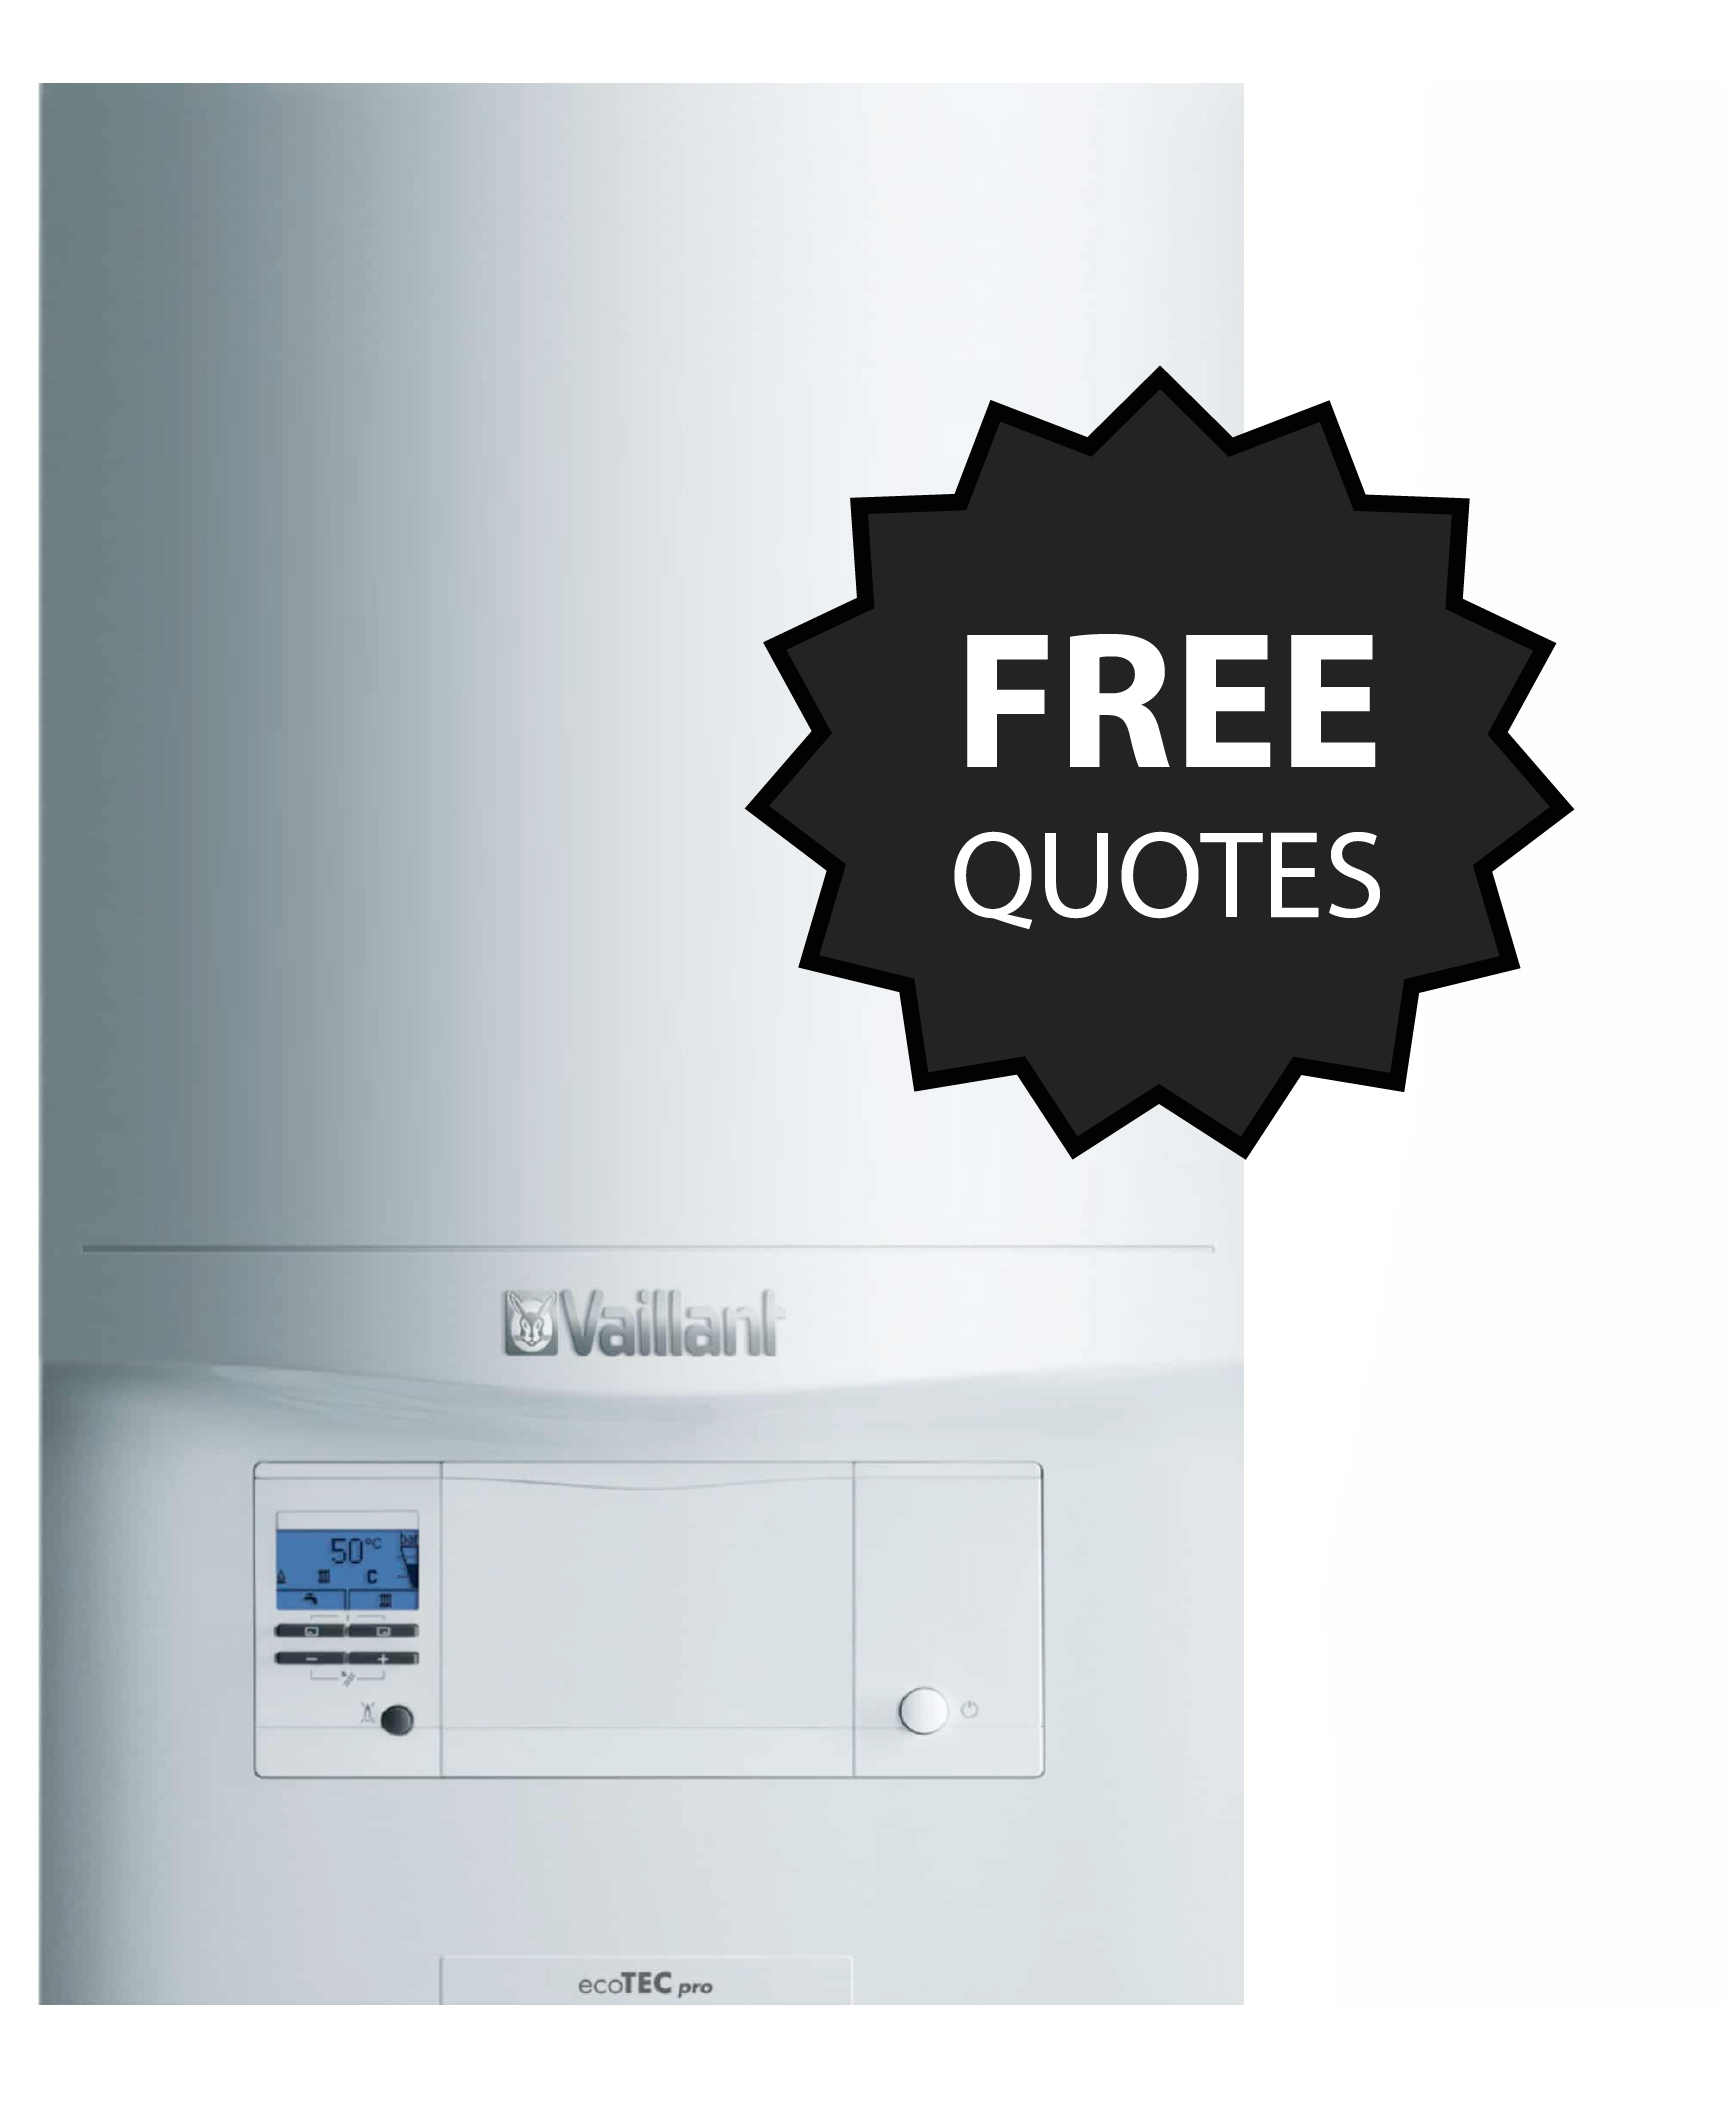 boiler-installations-bournemouth